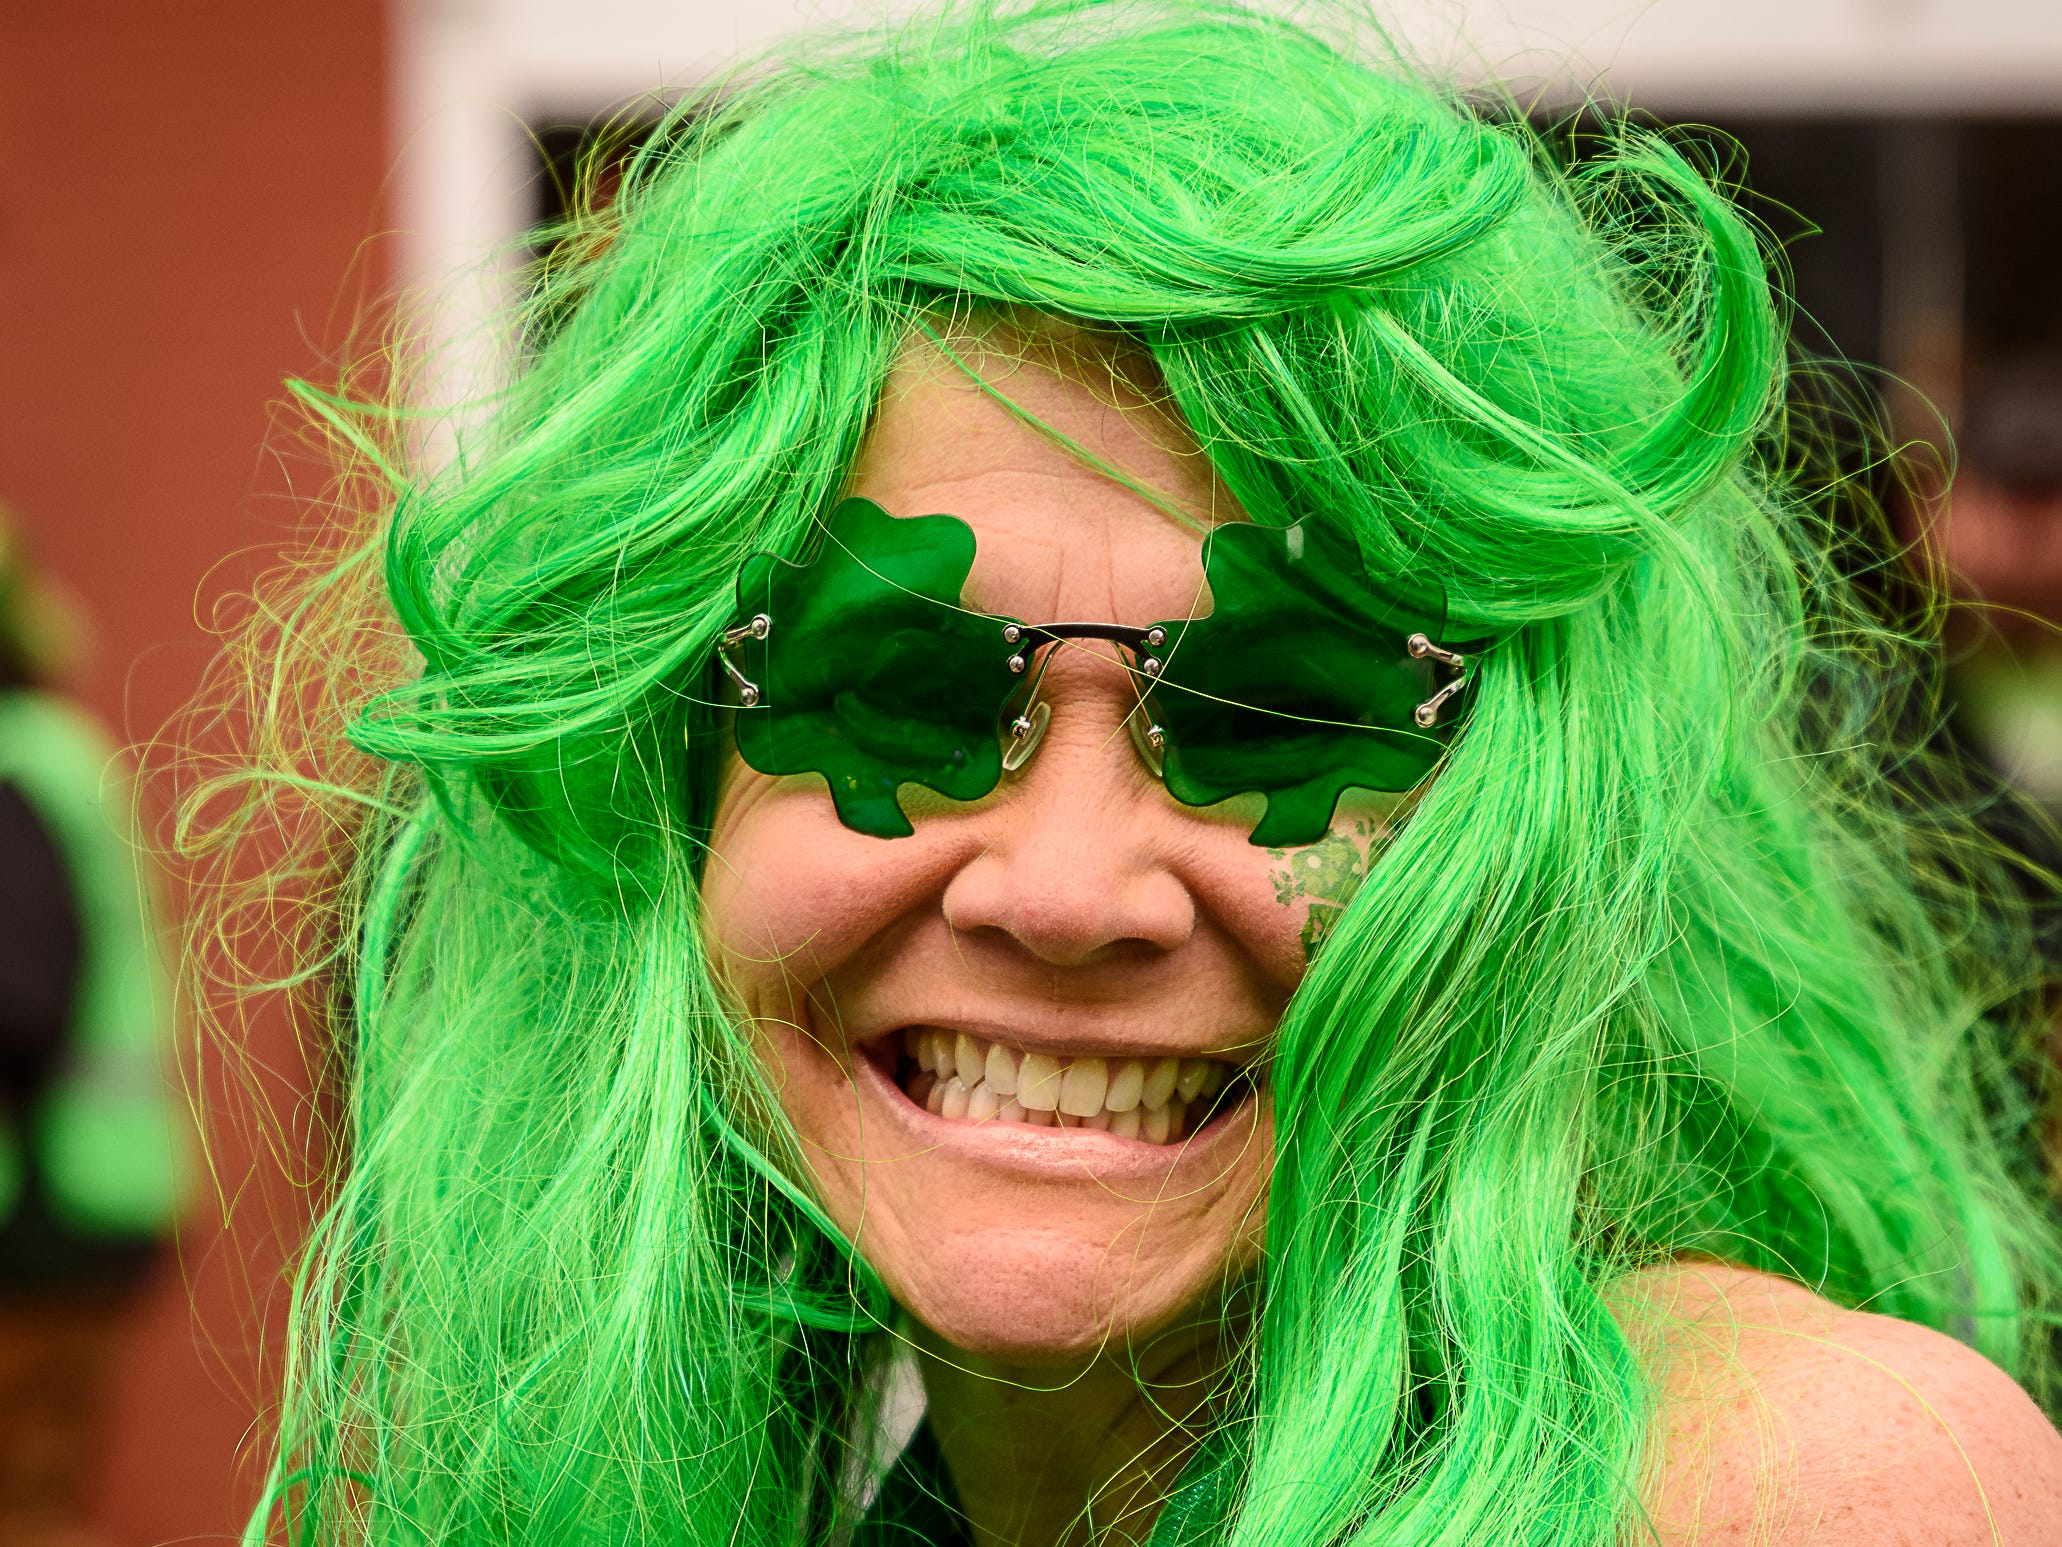 A parade participant gets into the spirit of St. Patrick's holiday at the Onancock parade on Sunday, March 10.